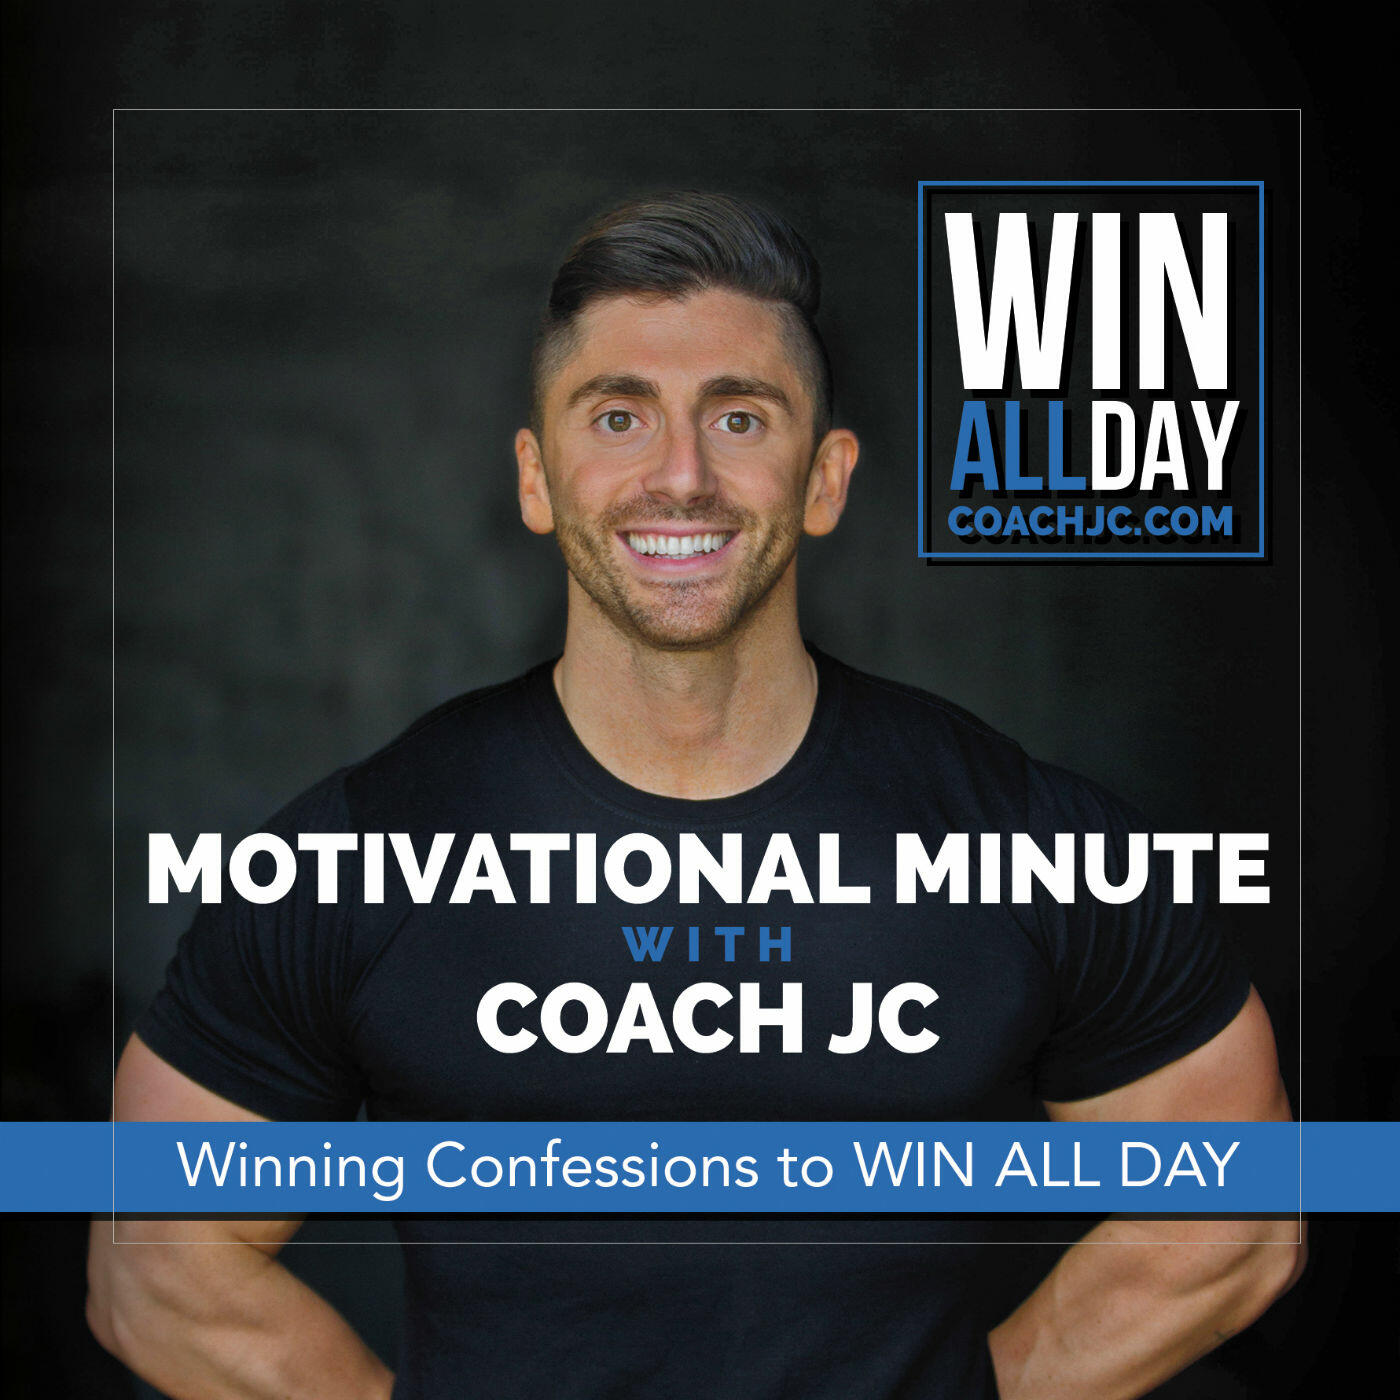 Motivational Minute with Coach JC